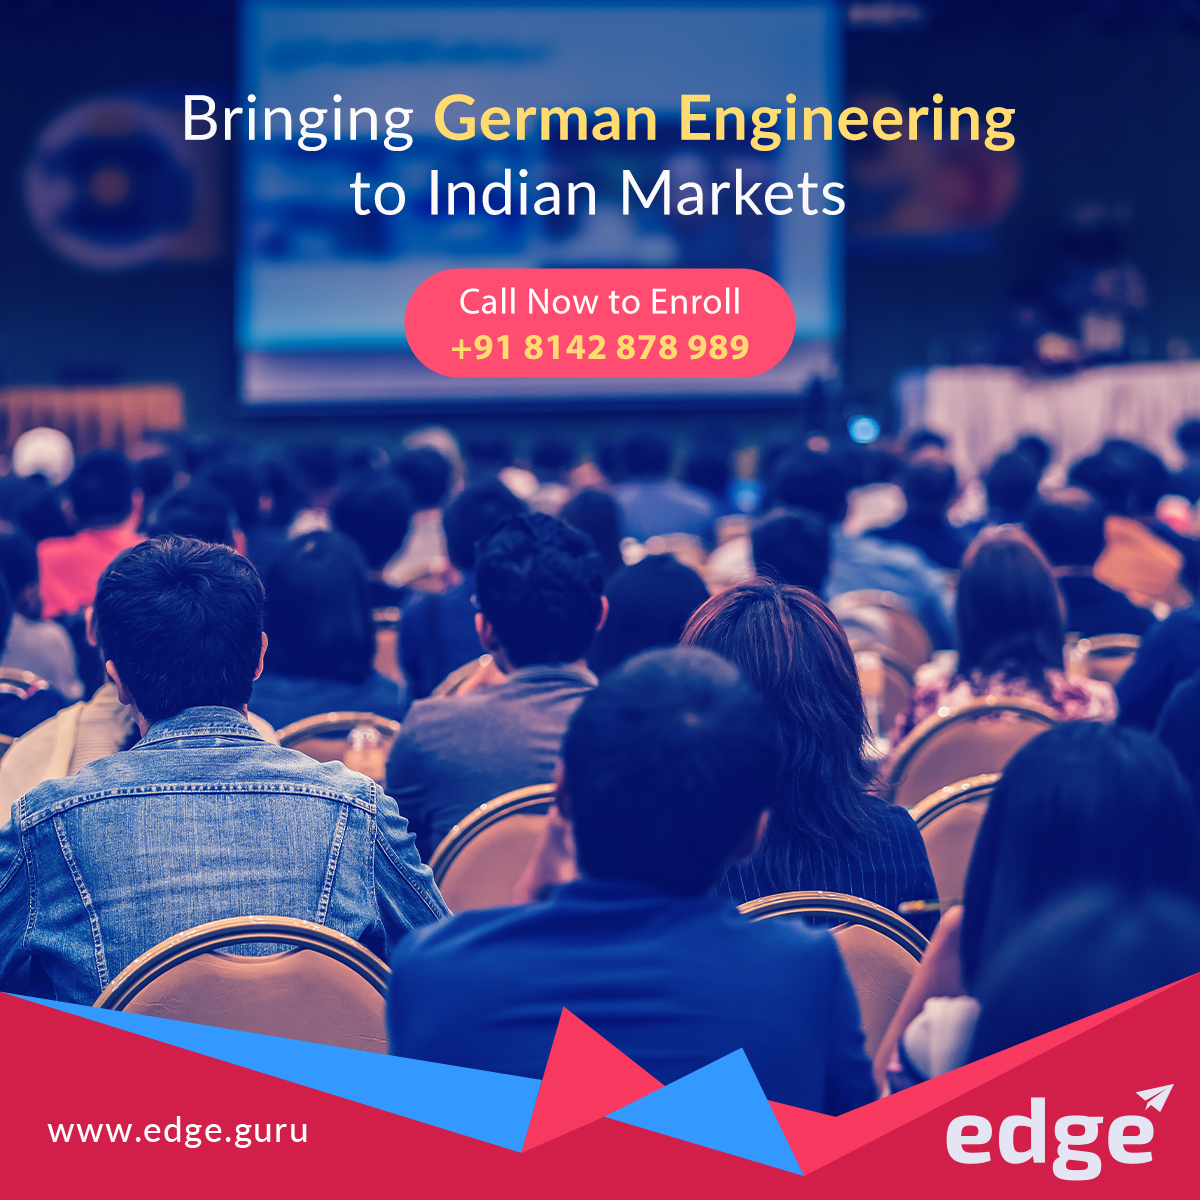 International aspirants today constitute more than 13% of the entire student population in #Germany out of which Indians form the second largest group enrolled in #GermanUniversities. Now #EdgeFinishingSchool brings #GermanEngineering to India. Enroll Now! pic.twitter.com/NpQPTdwjMS